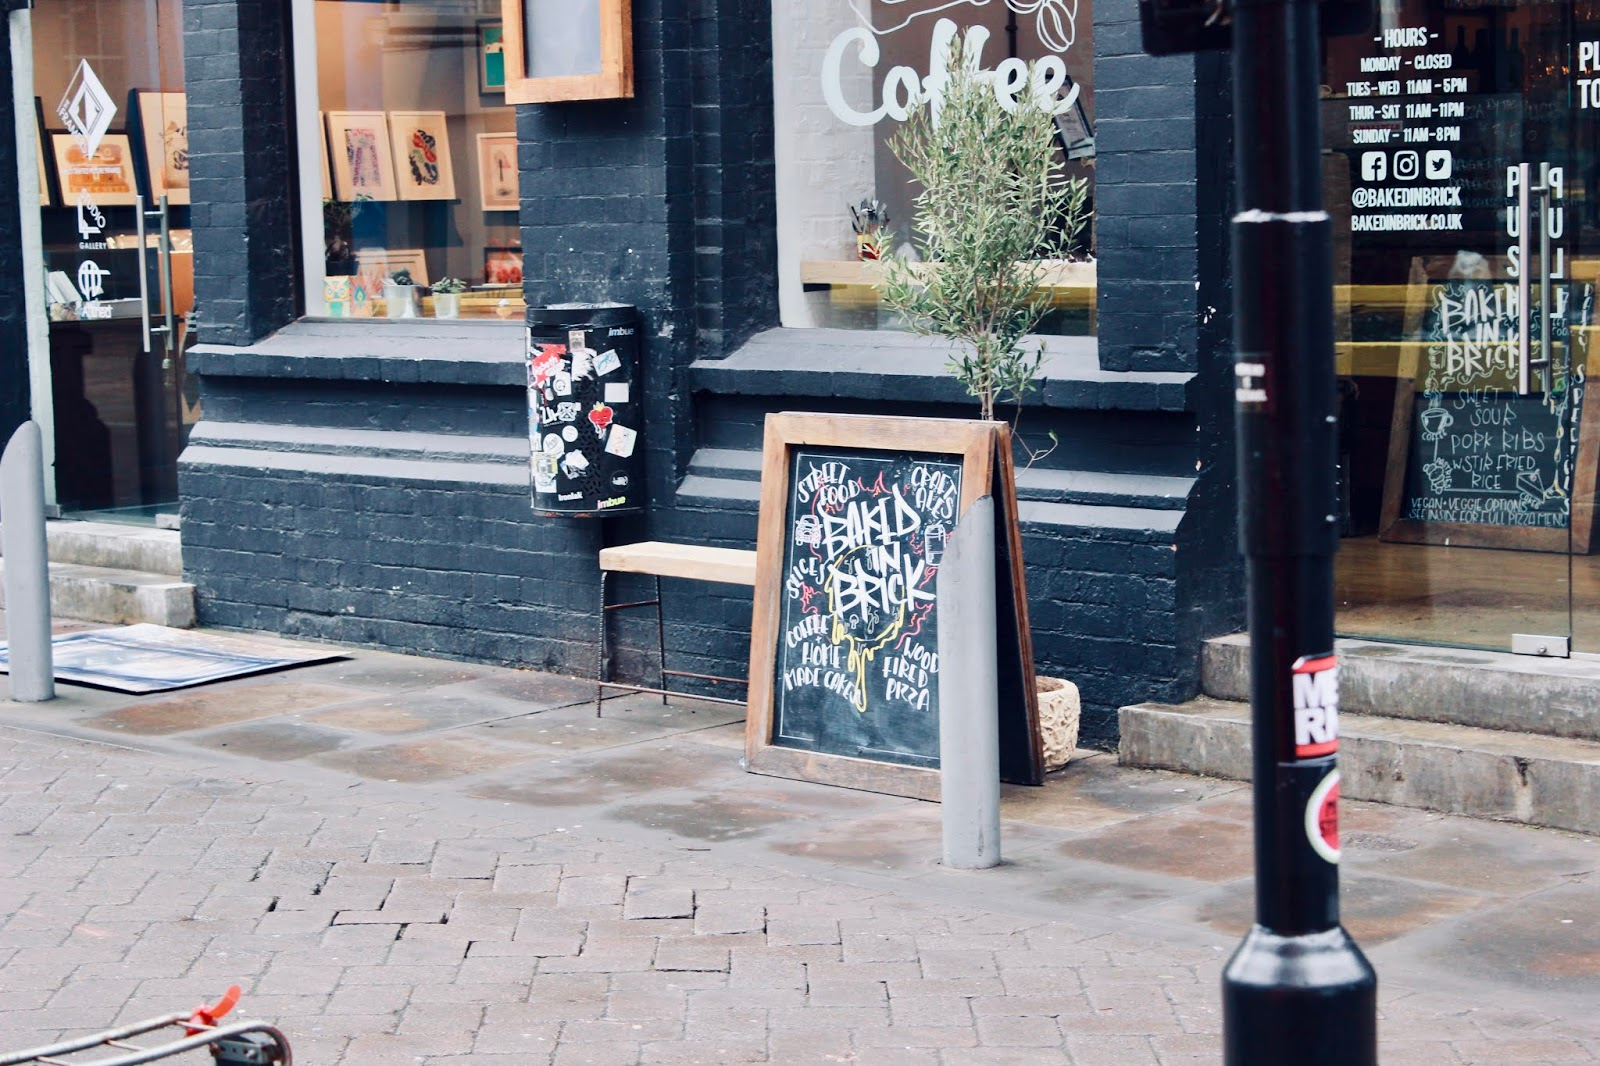 An image of a coffee shop